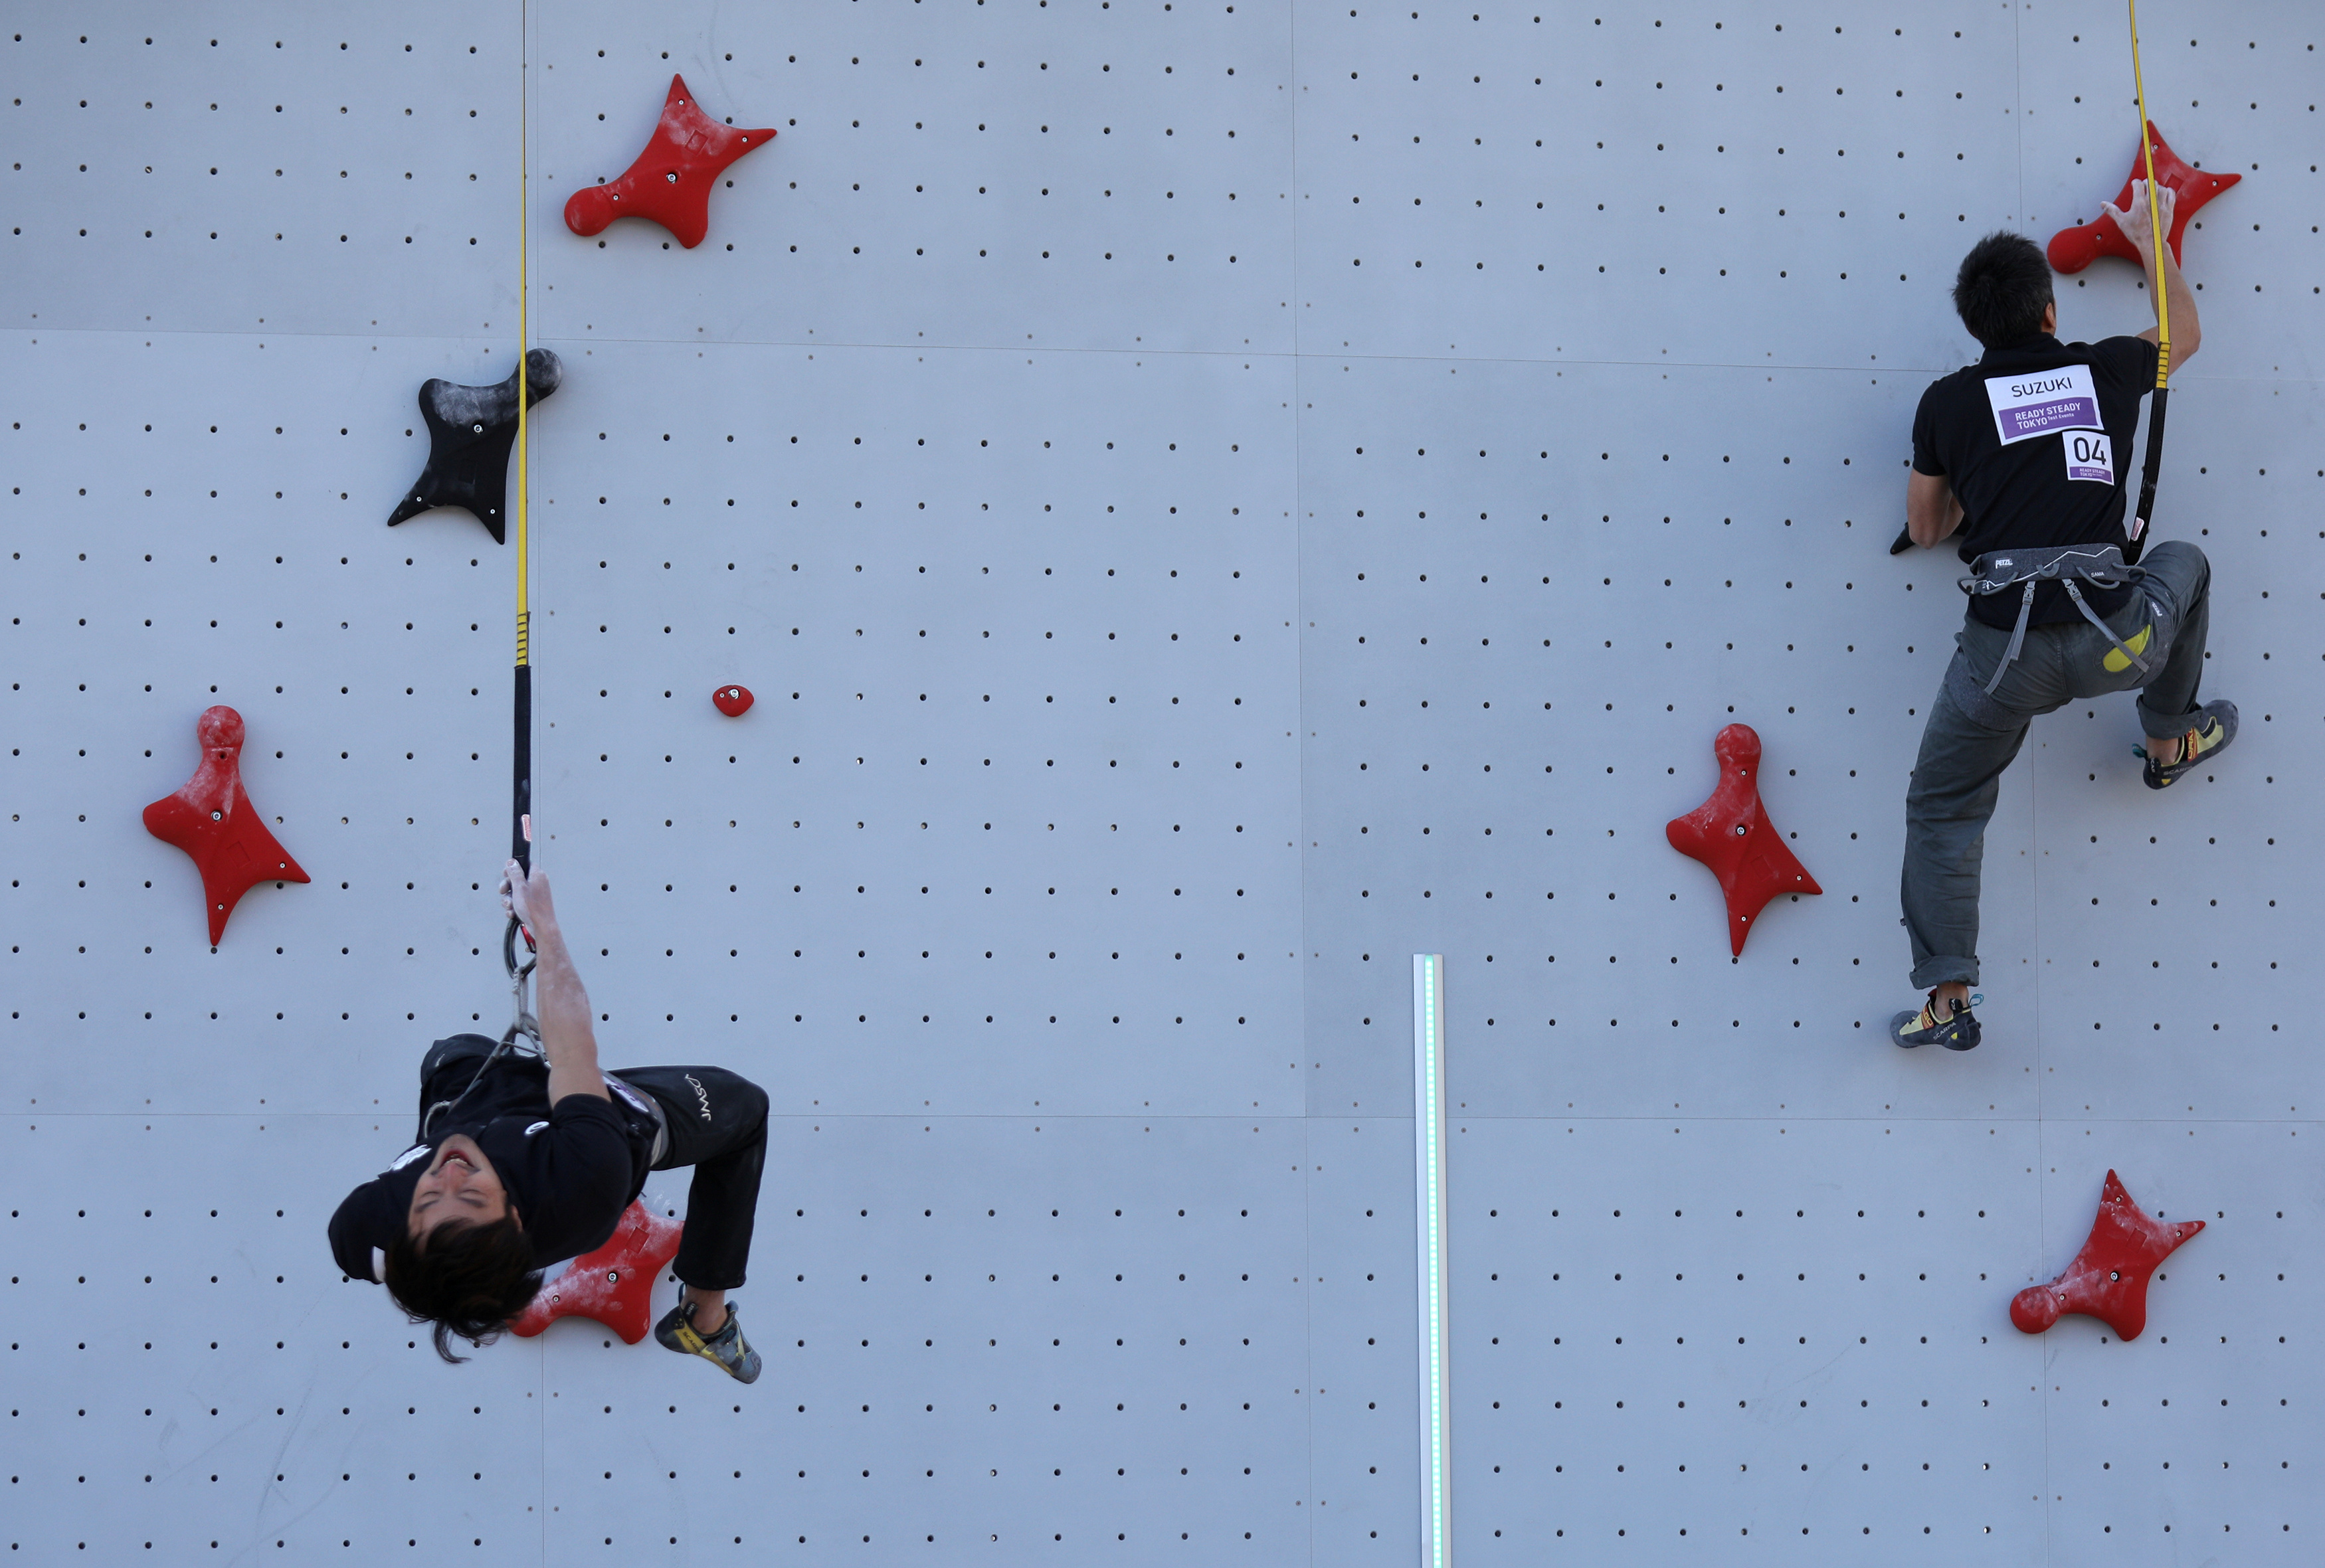 Tokyo 2020 staff participate in a test event for the sports climbing, replacing the athletes due to concerns over the spread of coronavirus at Aomi Urban Sports Park in Tokyo, Japan, March 6, 2020. REUTERS/Stoyan Nenov